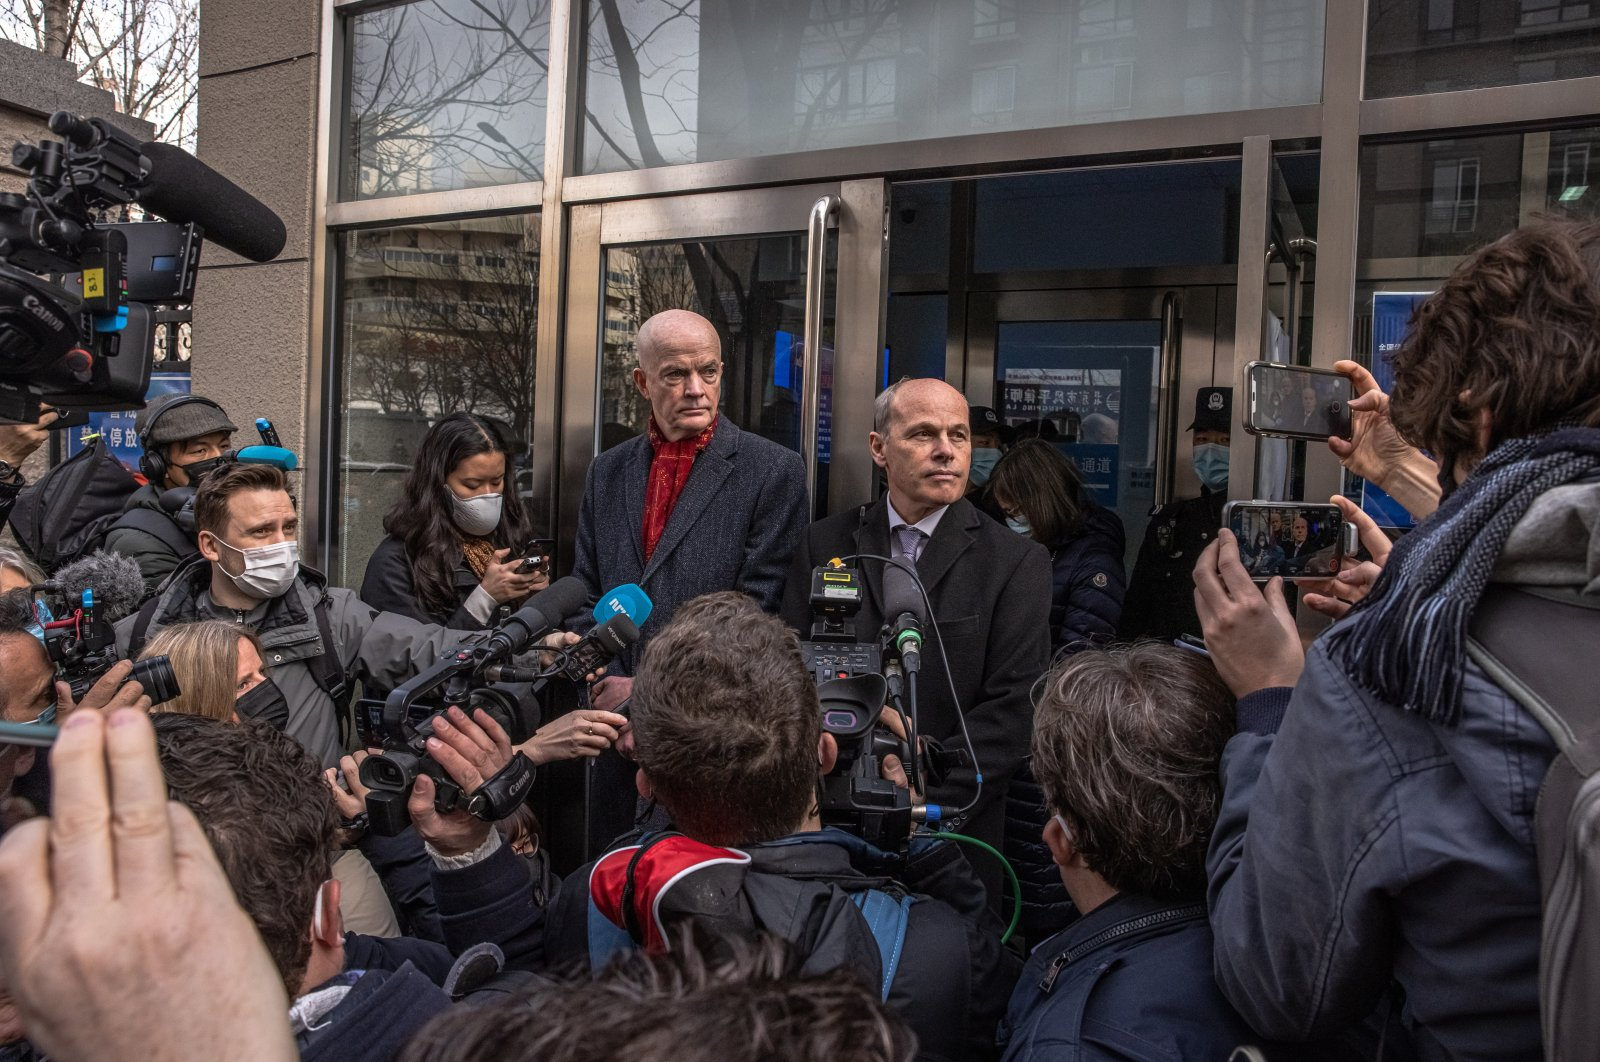 Jim Nickel (C-R), deputy head of the Canadian embassy in Beijing and William Klein (C-L), acting deputy chief of the U.S. Embassy in Beijing, speak to the media at the entrance to the Intermediate People's Court in Beijing, China, 22 March 2021. (EPA Photo)